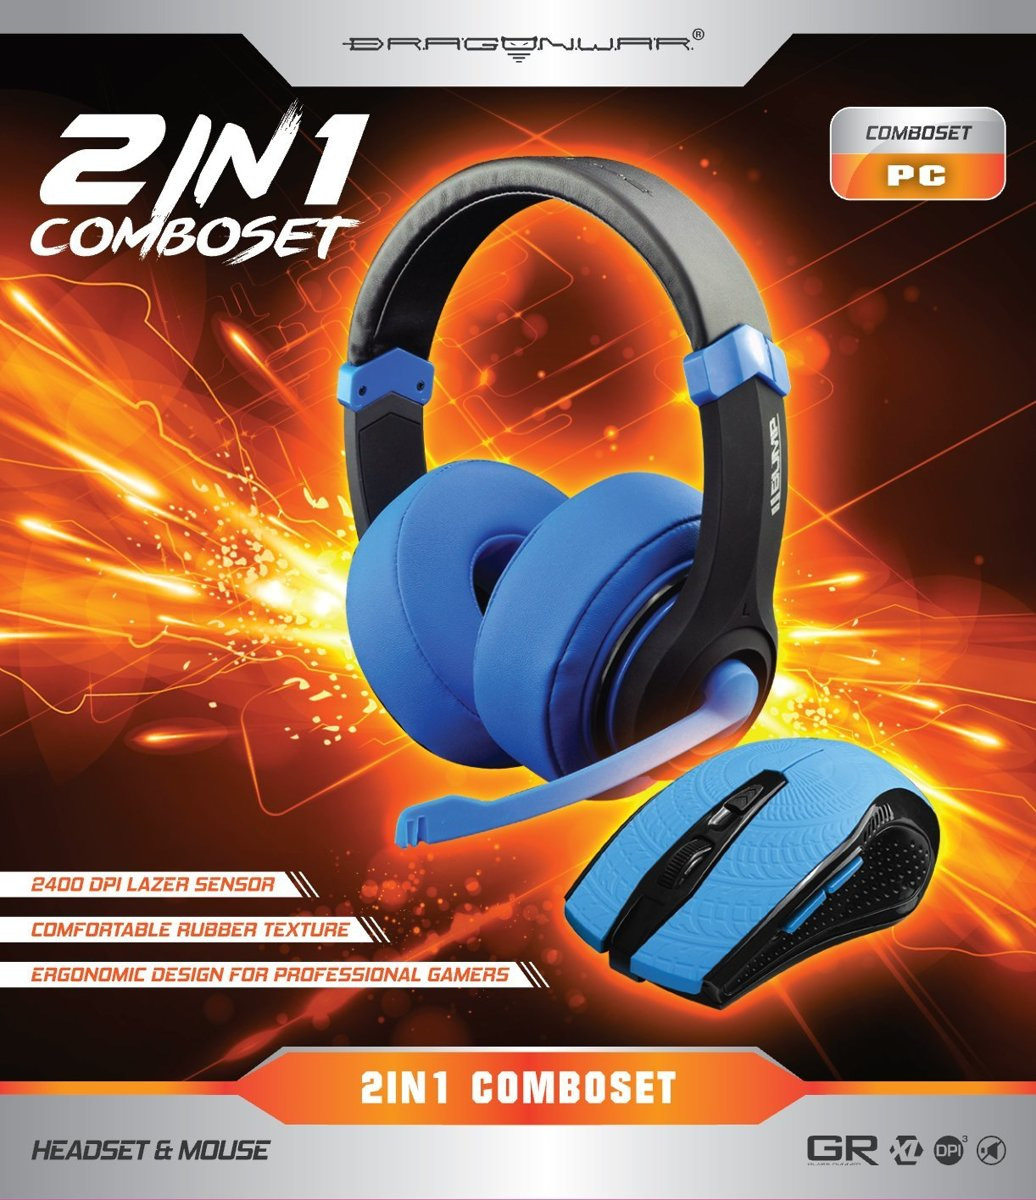 DragonWar 2in1 Combo Set (Gaming Headset + Mouse) Blue Edition